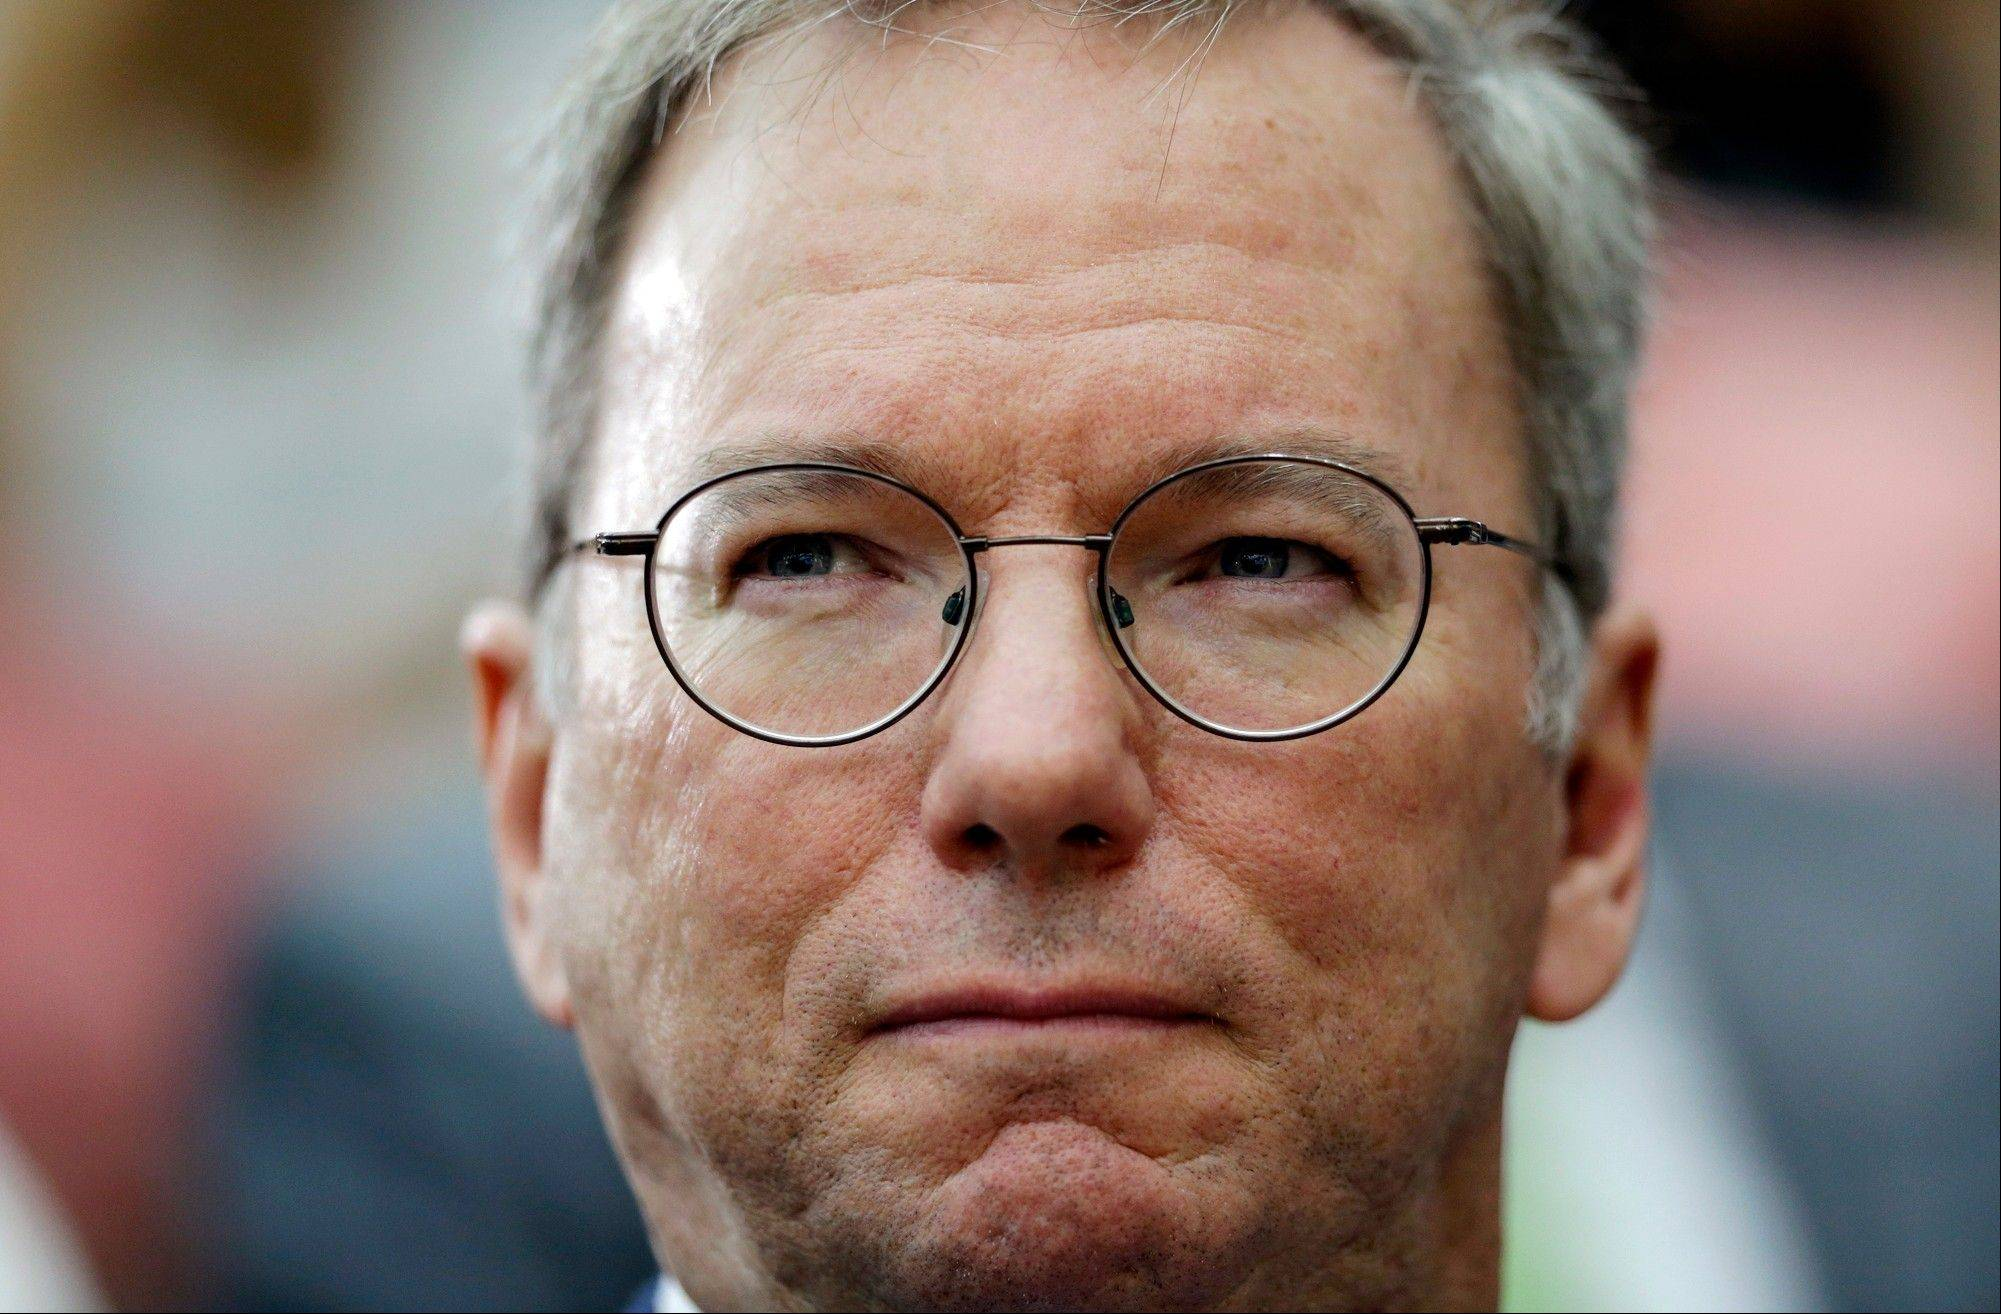 Google executive chairman Eric Schmidt will be traveling to North Korea on a private trip led by former New Mexico Gov. Bill Richardson that could take place as early as this month, sources told The Associated Press on Wednesday.